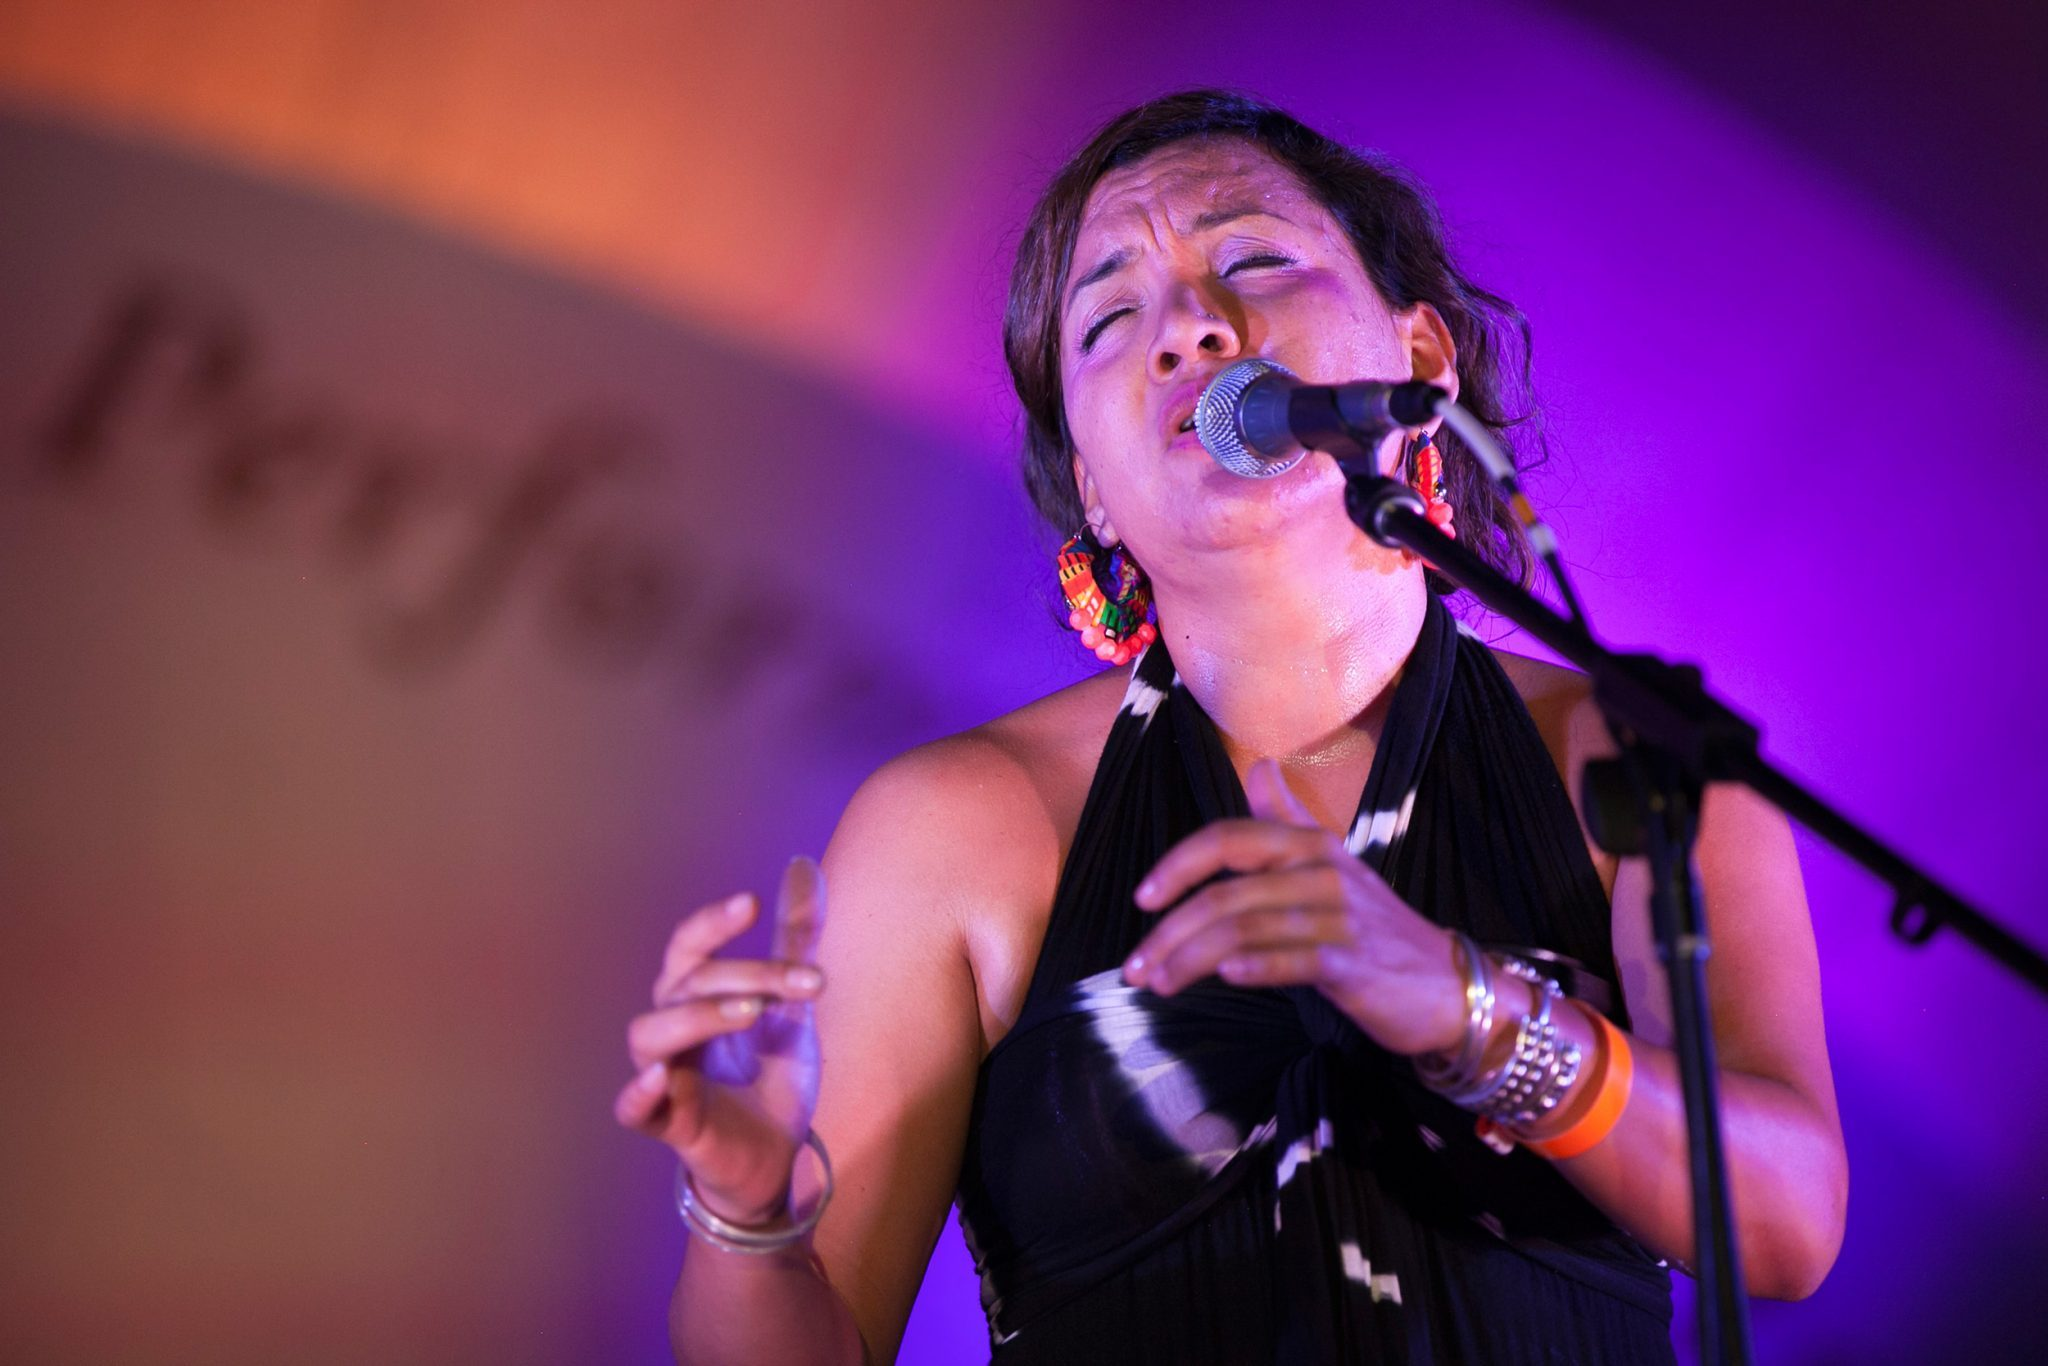 Katja Liebing/Courier Martha Gonzales, lead singer of the band Quetzal, performs at the Levitt Pavilion during the free summer concert series in Pasadena on September 12, 2015.